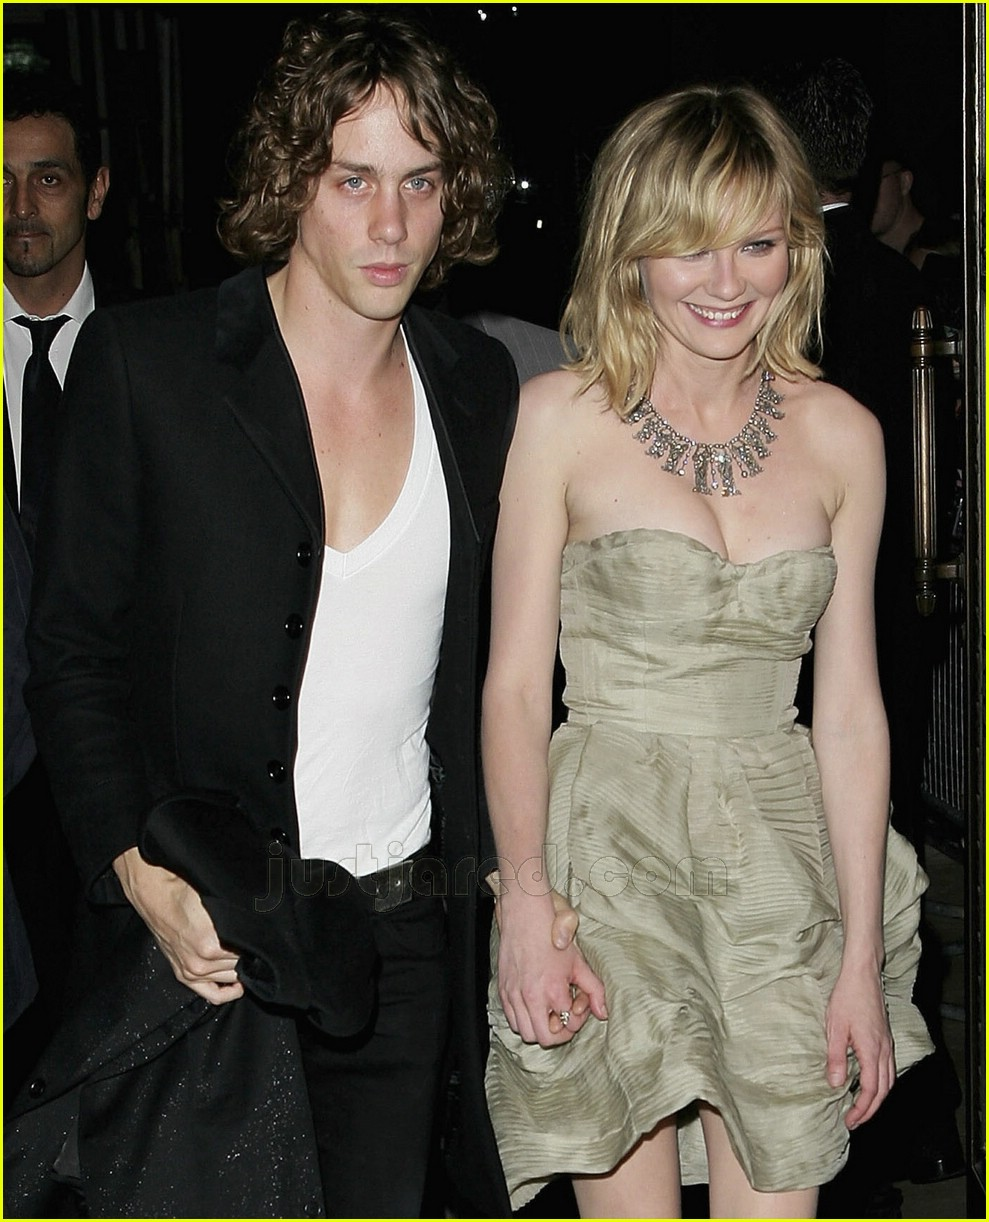 Kirsten dunst johnny borrell a couple yeeurch